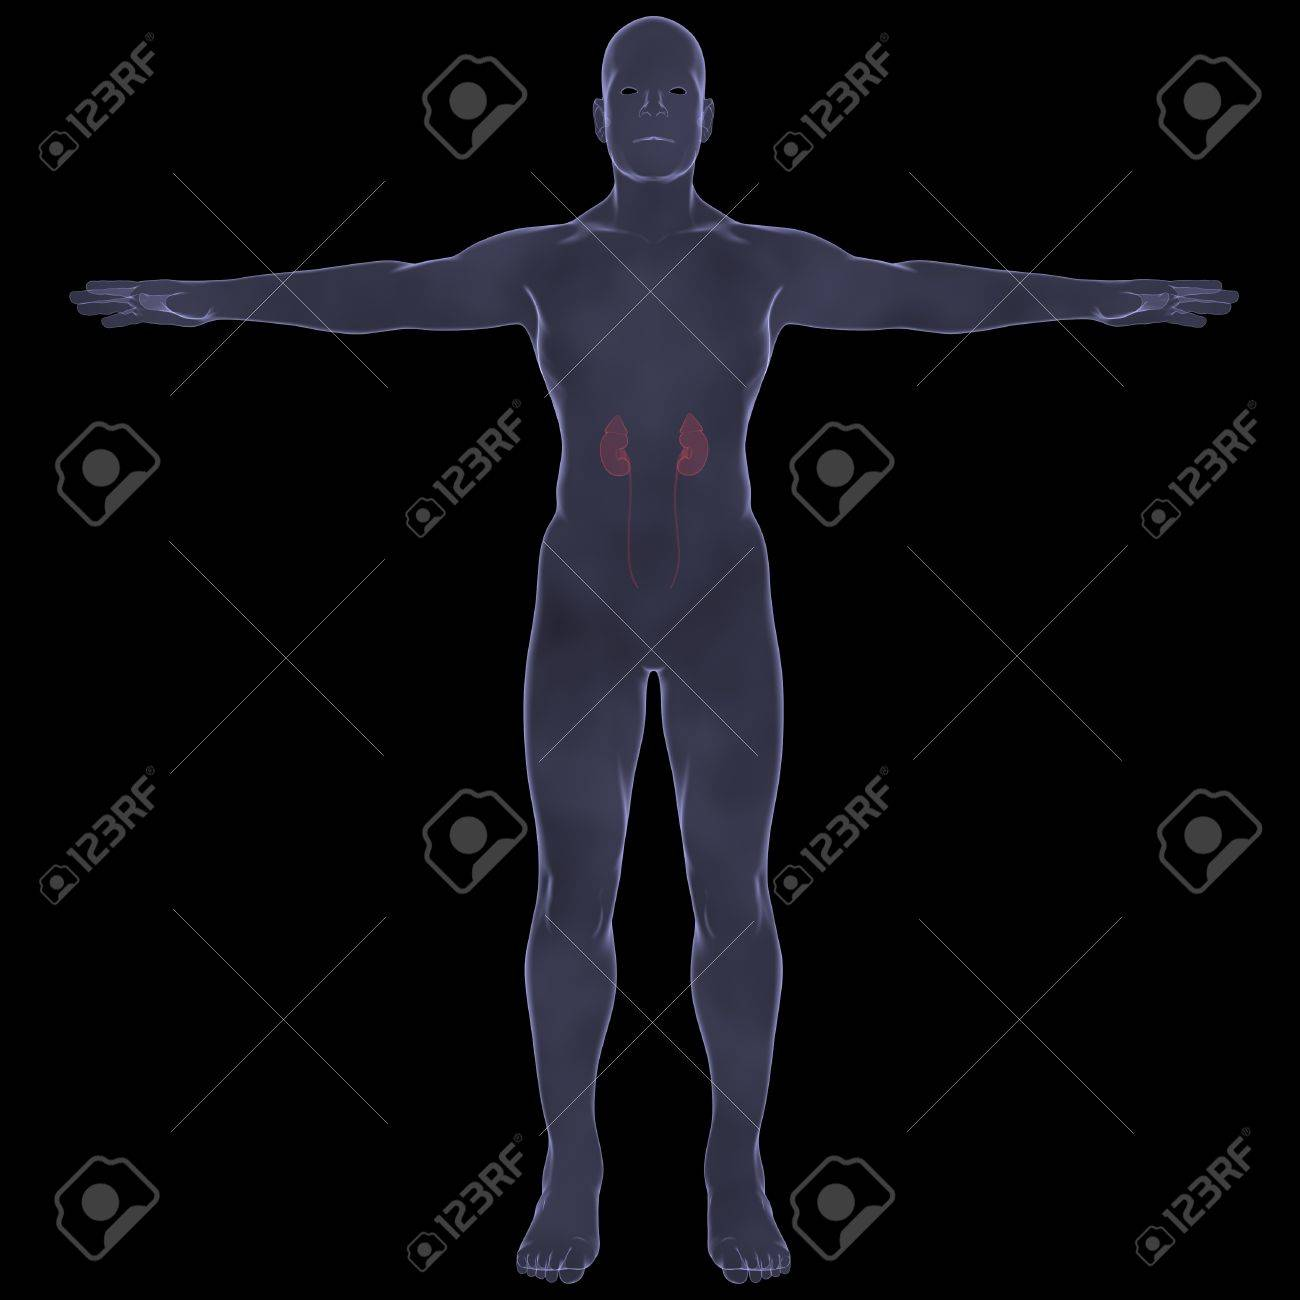 X-Ray picture of a person  Sore digestion  Isolated render on a black background Stock Photo - 19443573